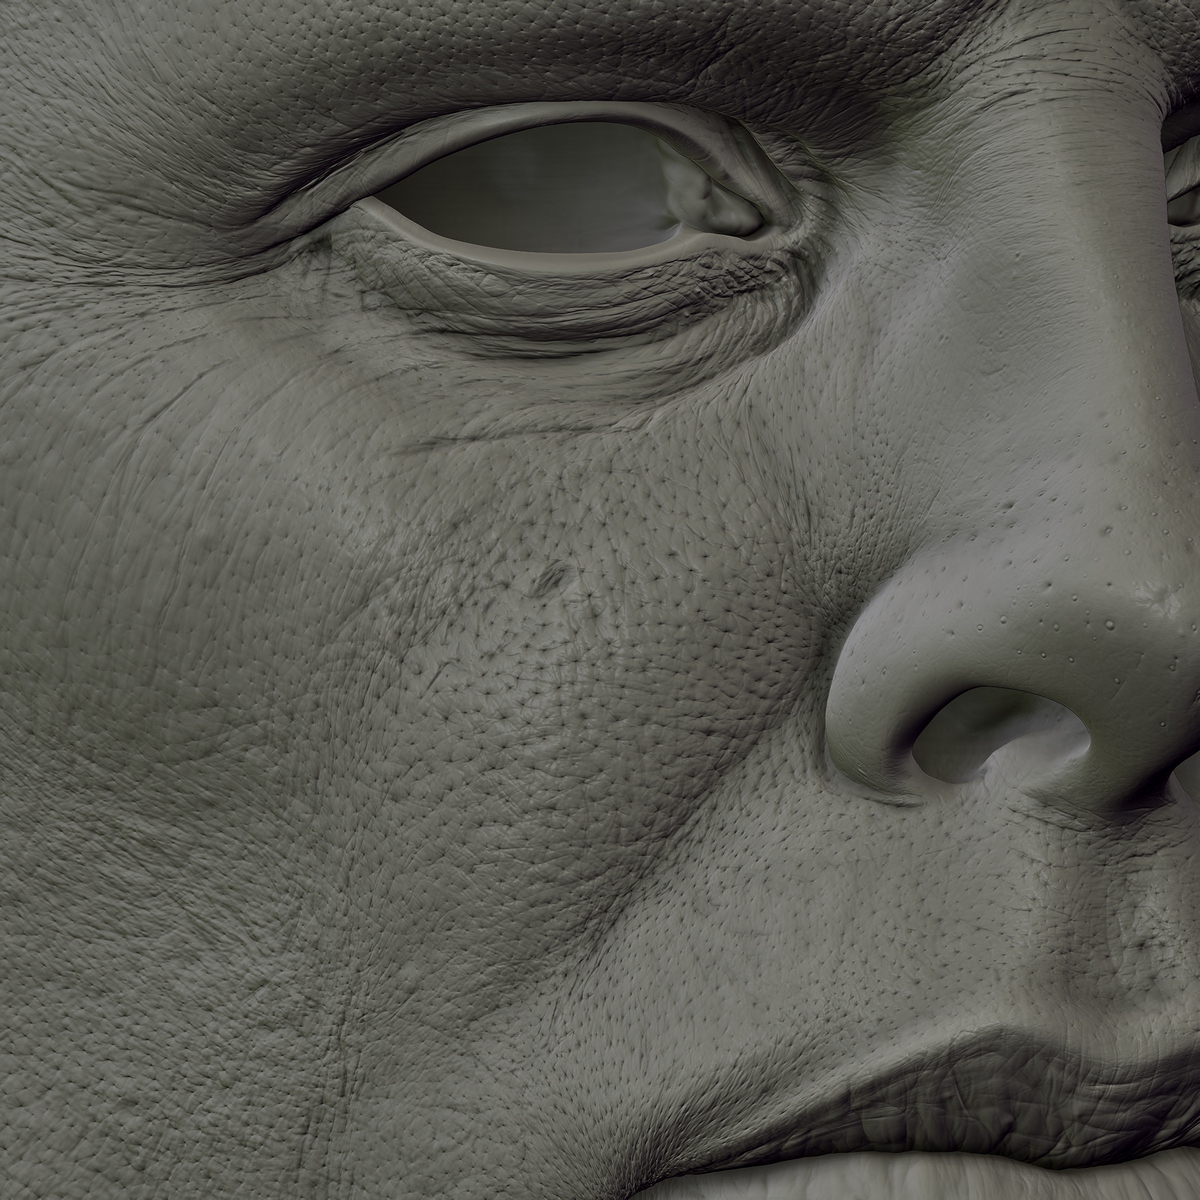 ZBrush Document02